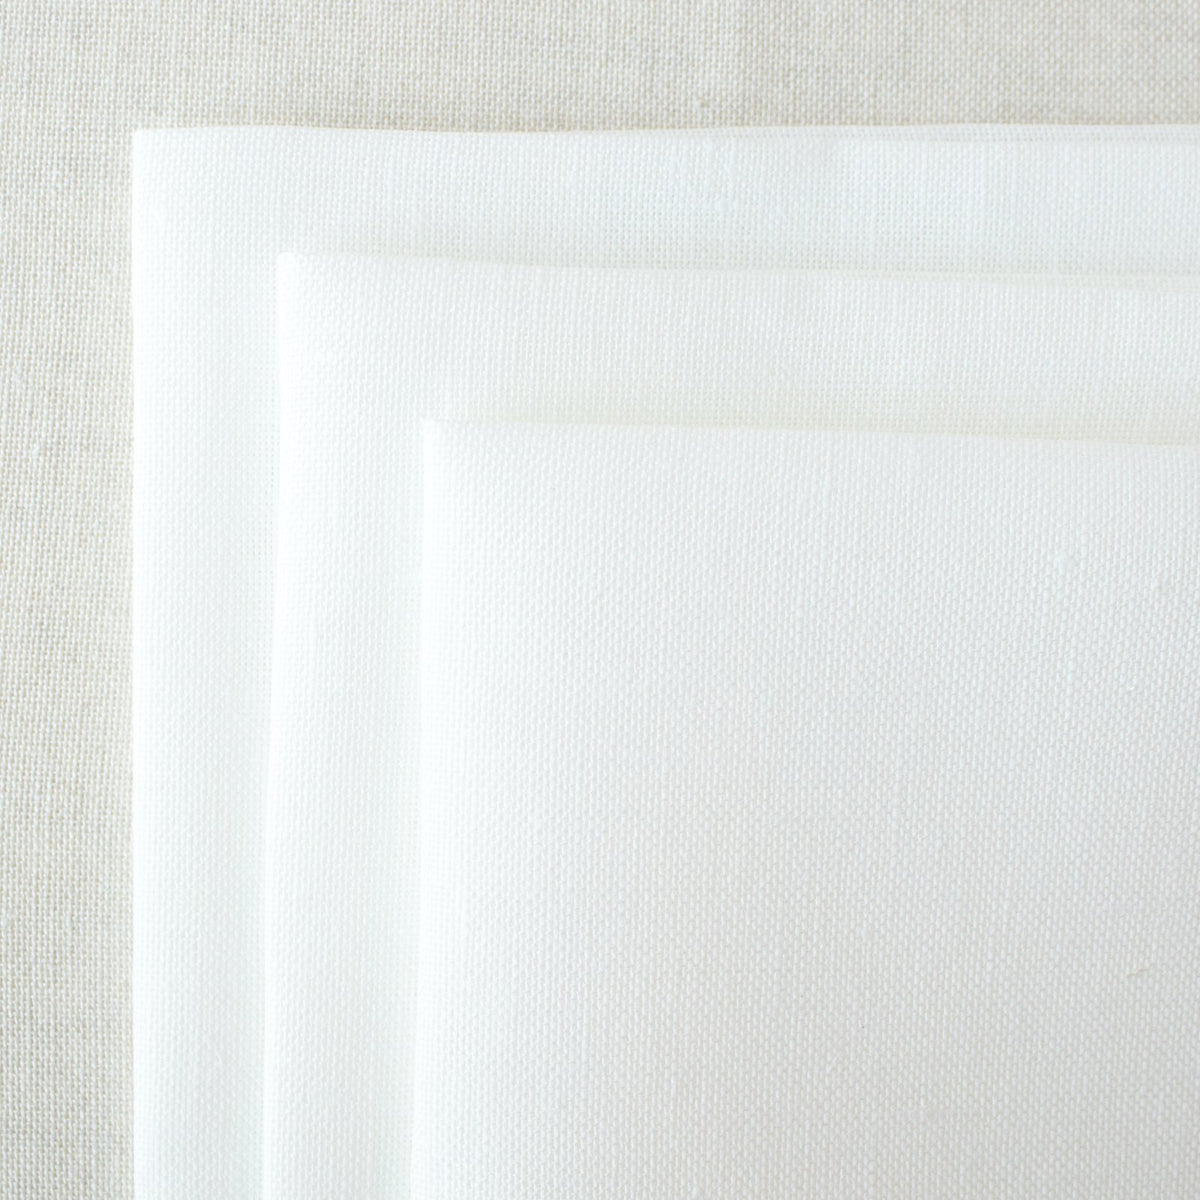 Cashel Antique White Linen Fabric - 28 count